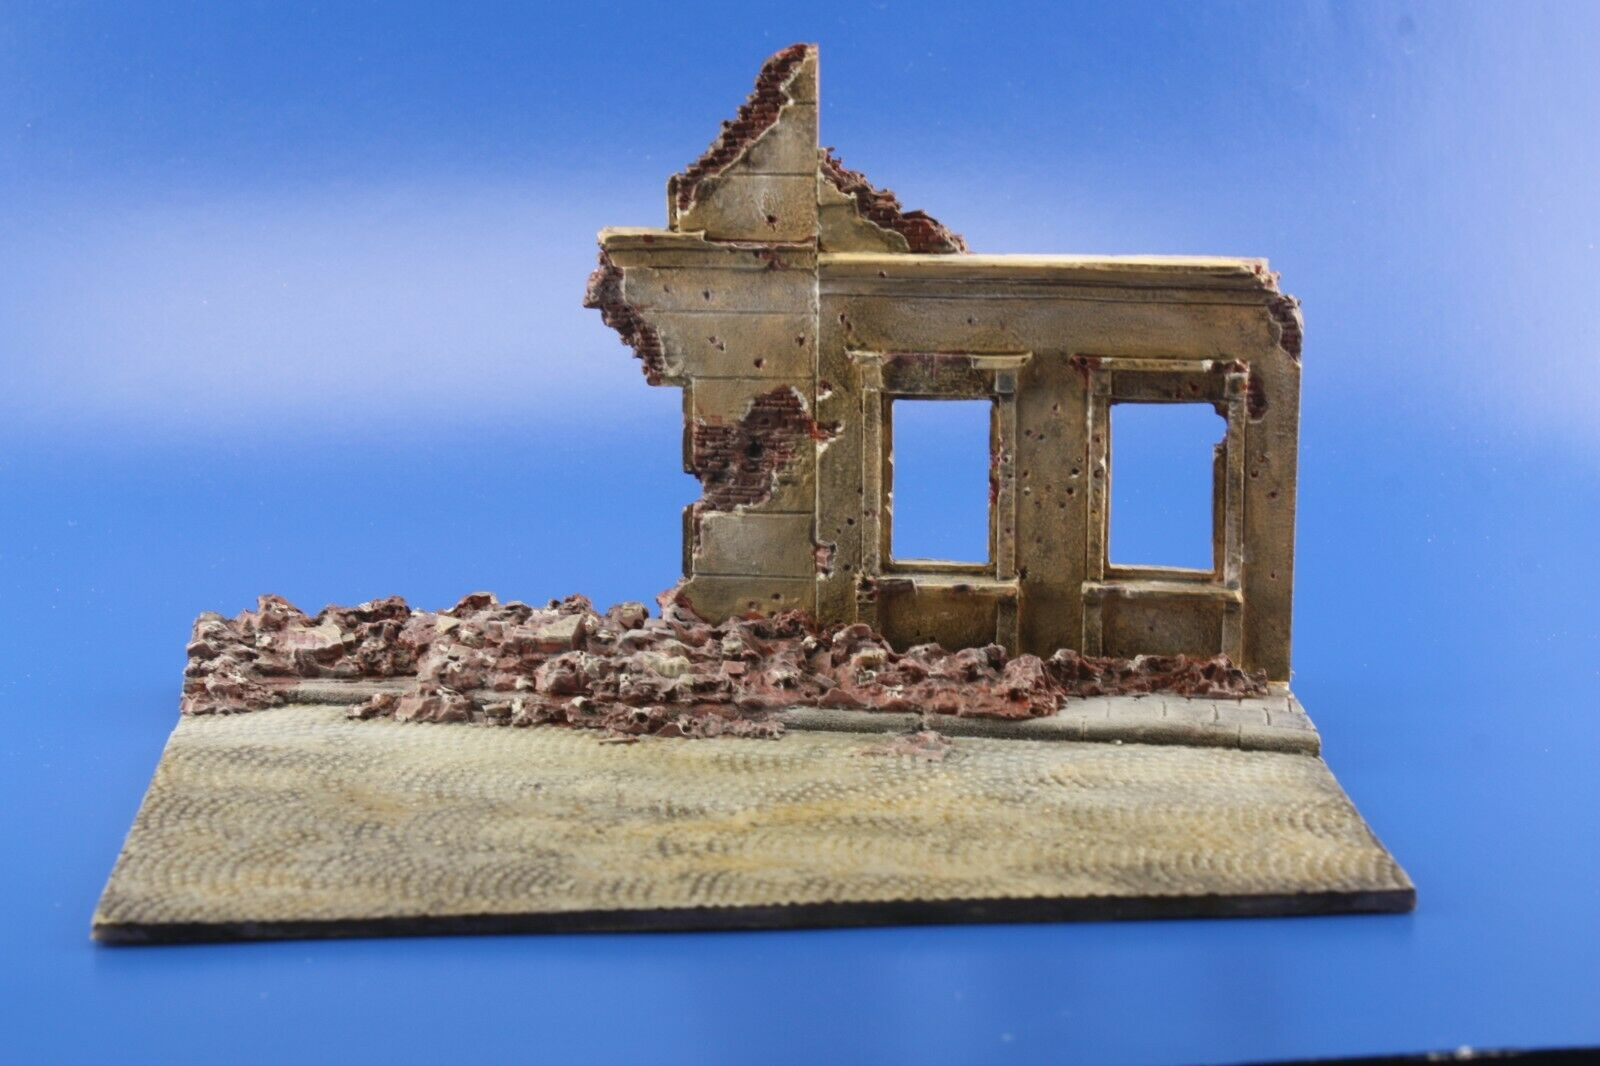 1/72 Ruins Diorama Diorama Display Base for Military Scale Model Tanks & Vehicles D8 - redoguk